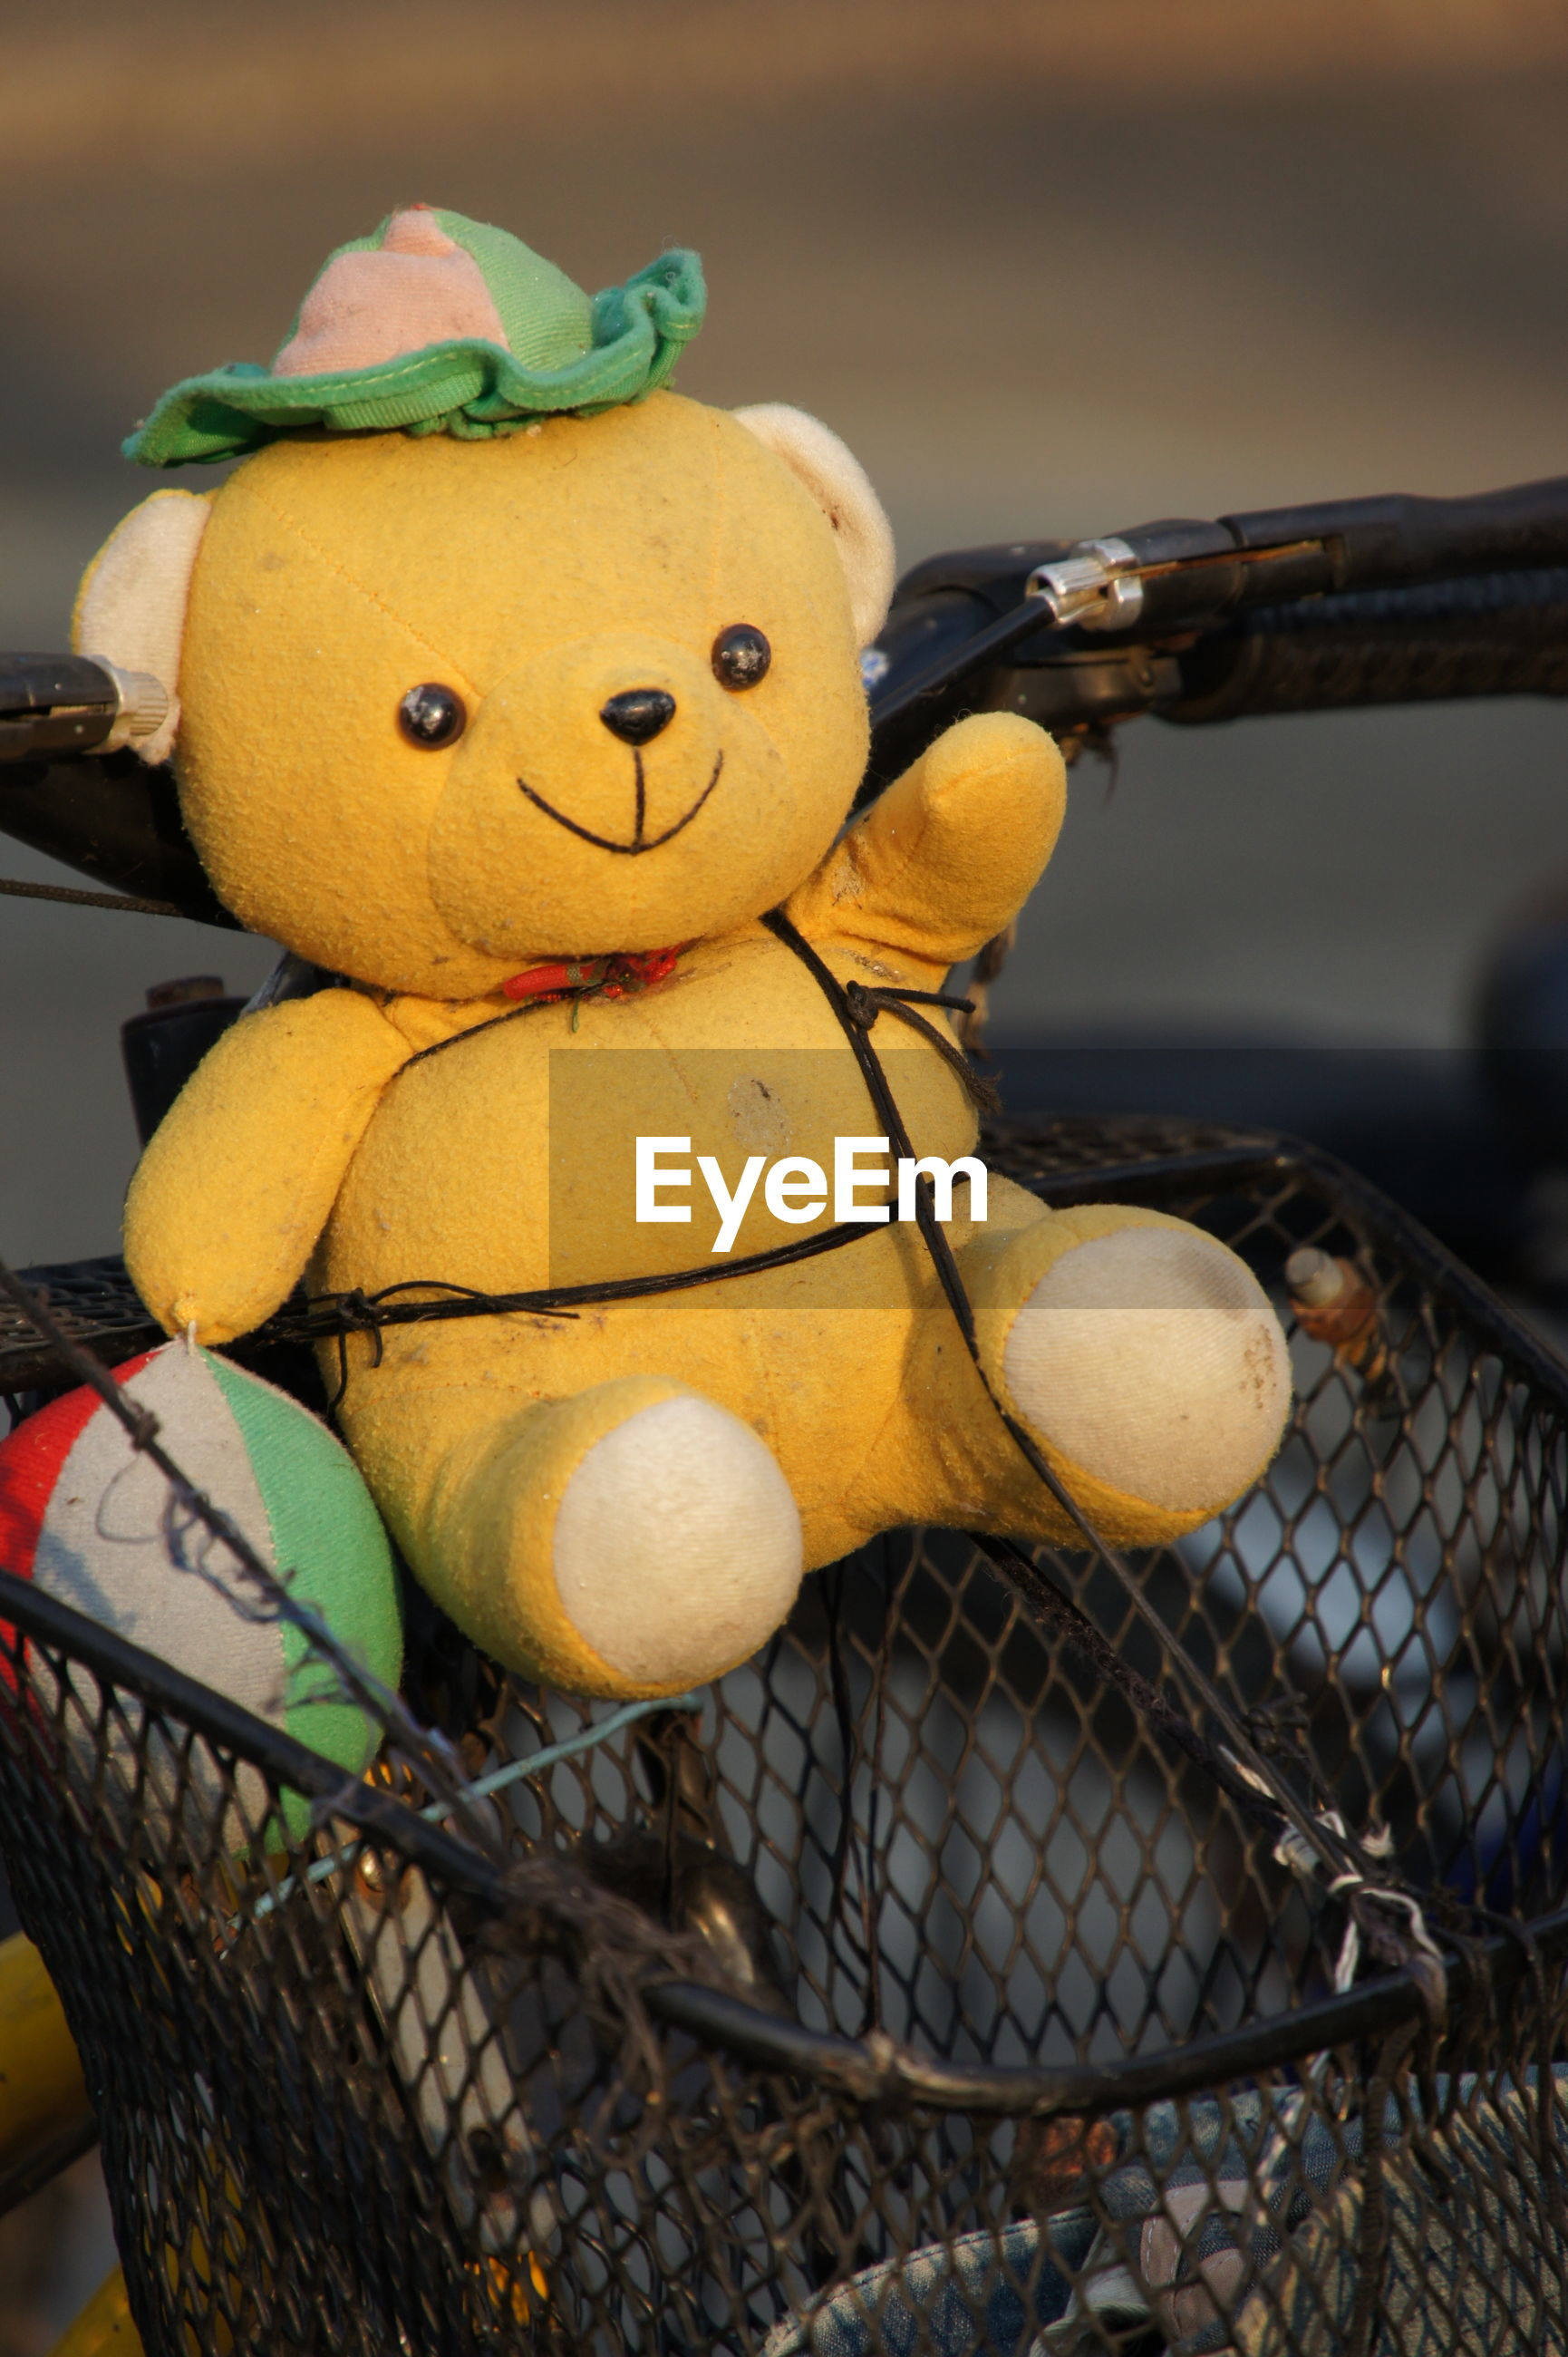 Stuffed toy in bicycle basket